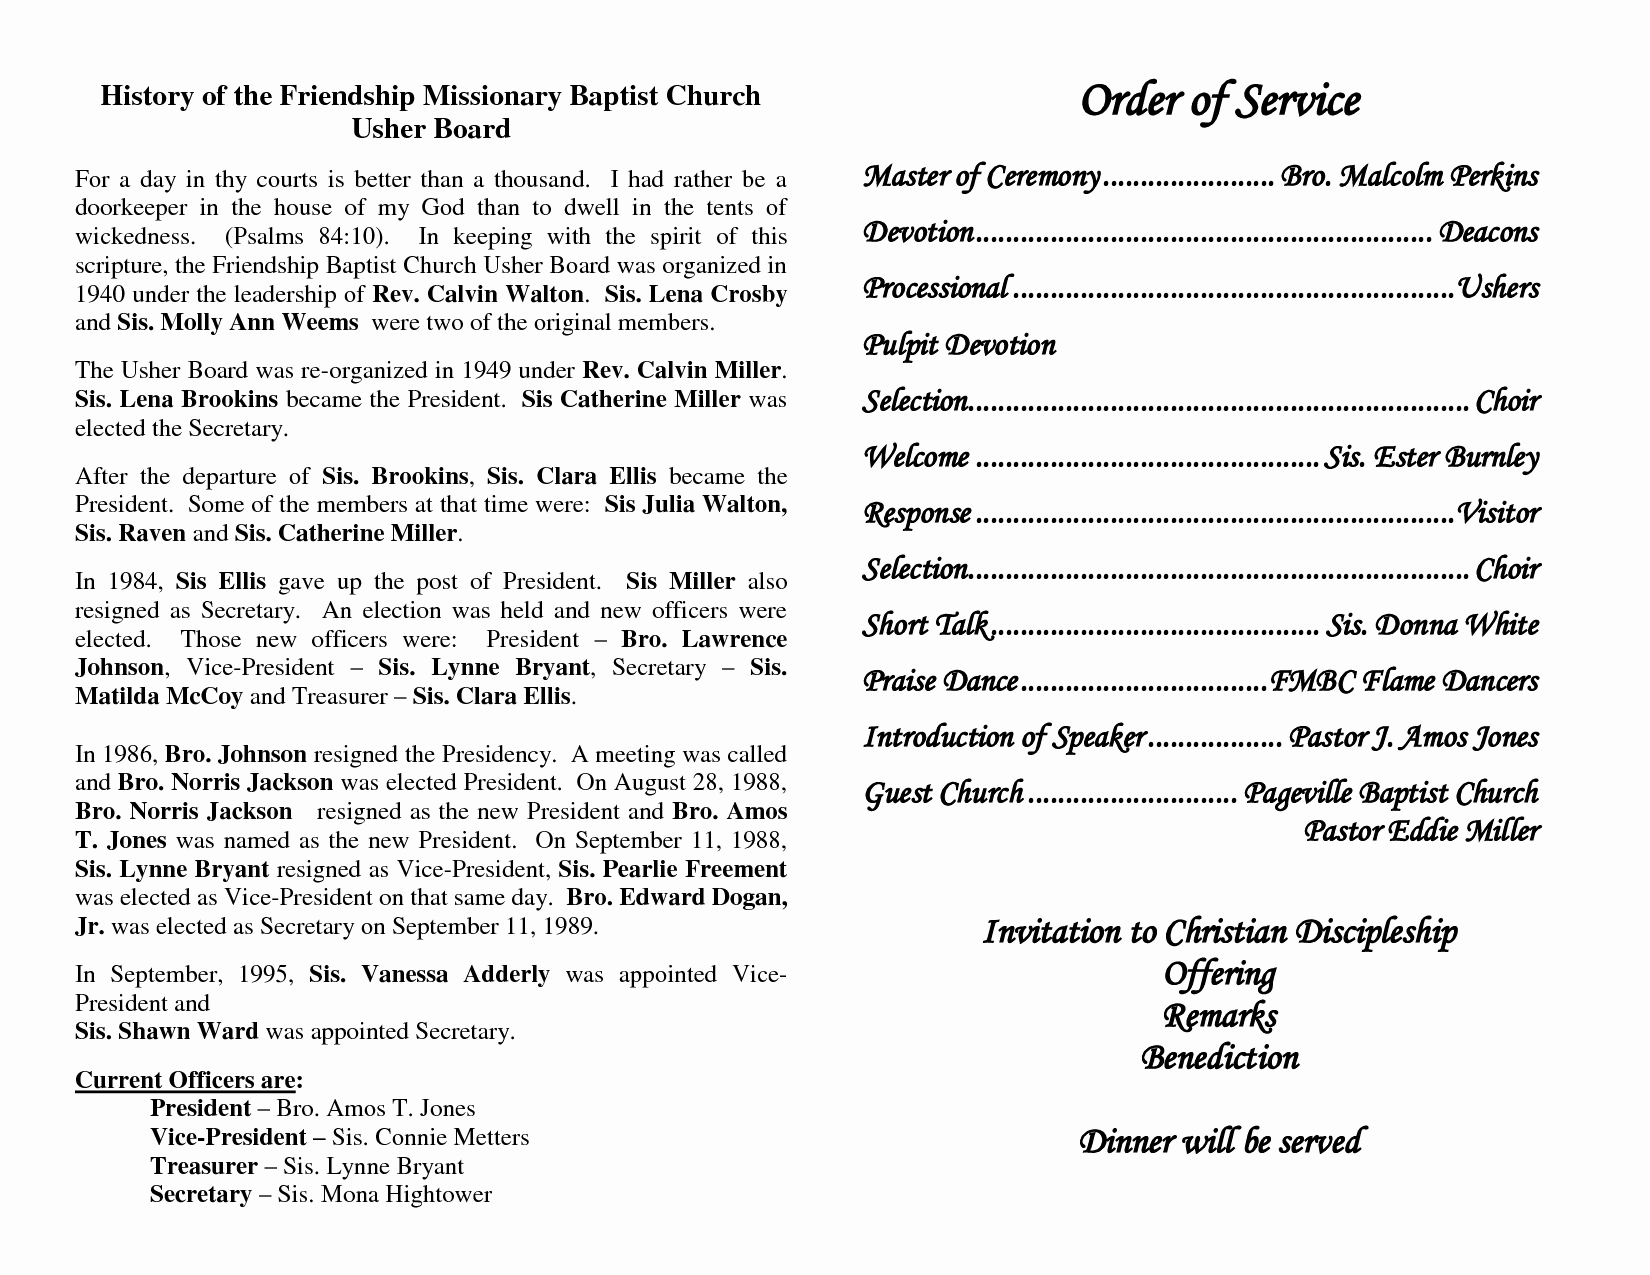 Best S Of Church Programs order Service Church